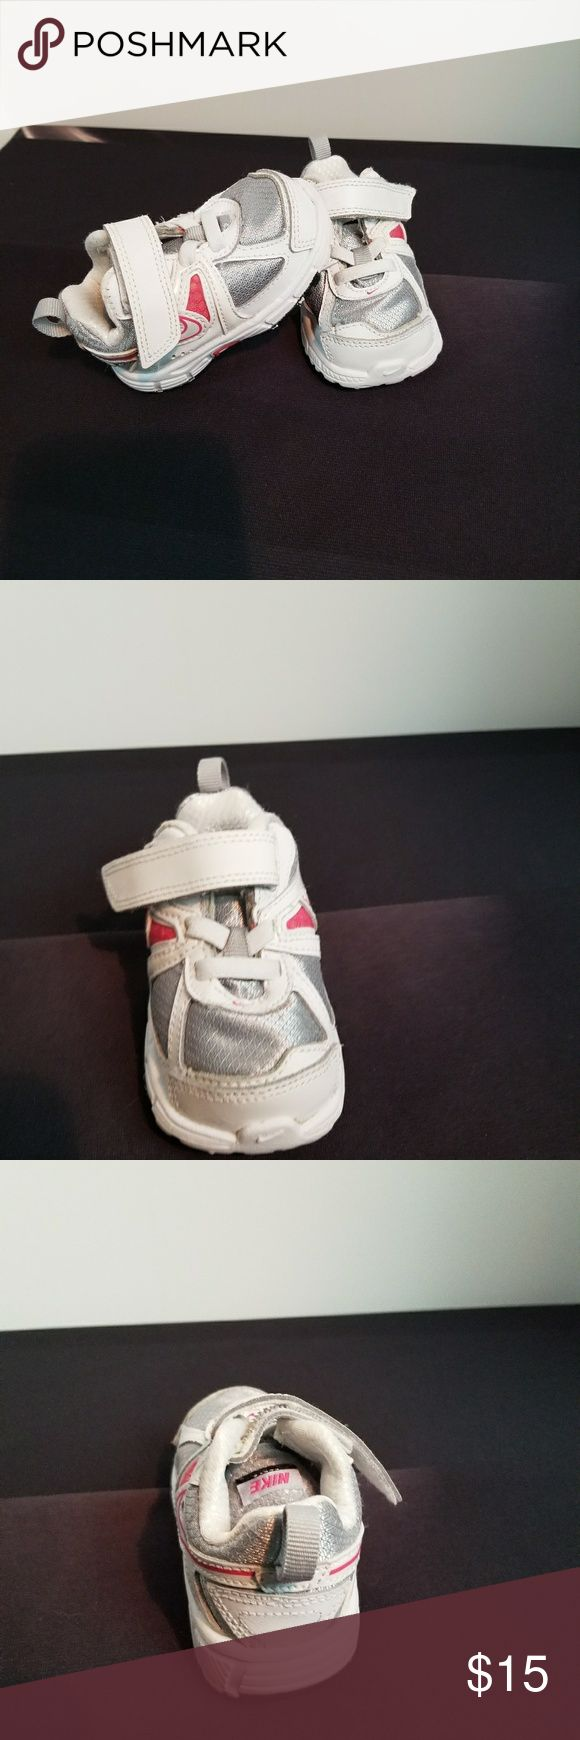 🌸Just Listed🌸Baby Girl Nike Shoes Size: 3C 🌸Velcro 🌸No box included  🌸UPC: 00826220955650 🌸Pre-owned but in great condition Nike Shoes Baby & Walker